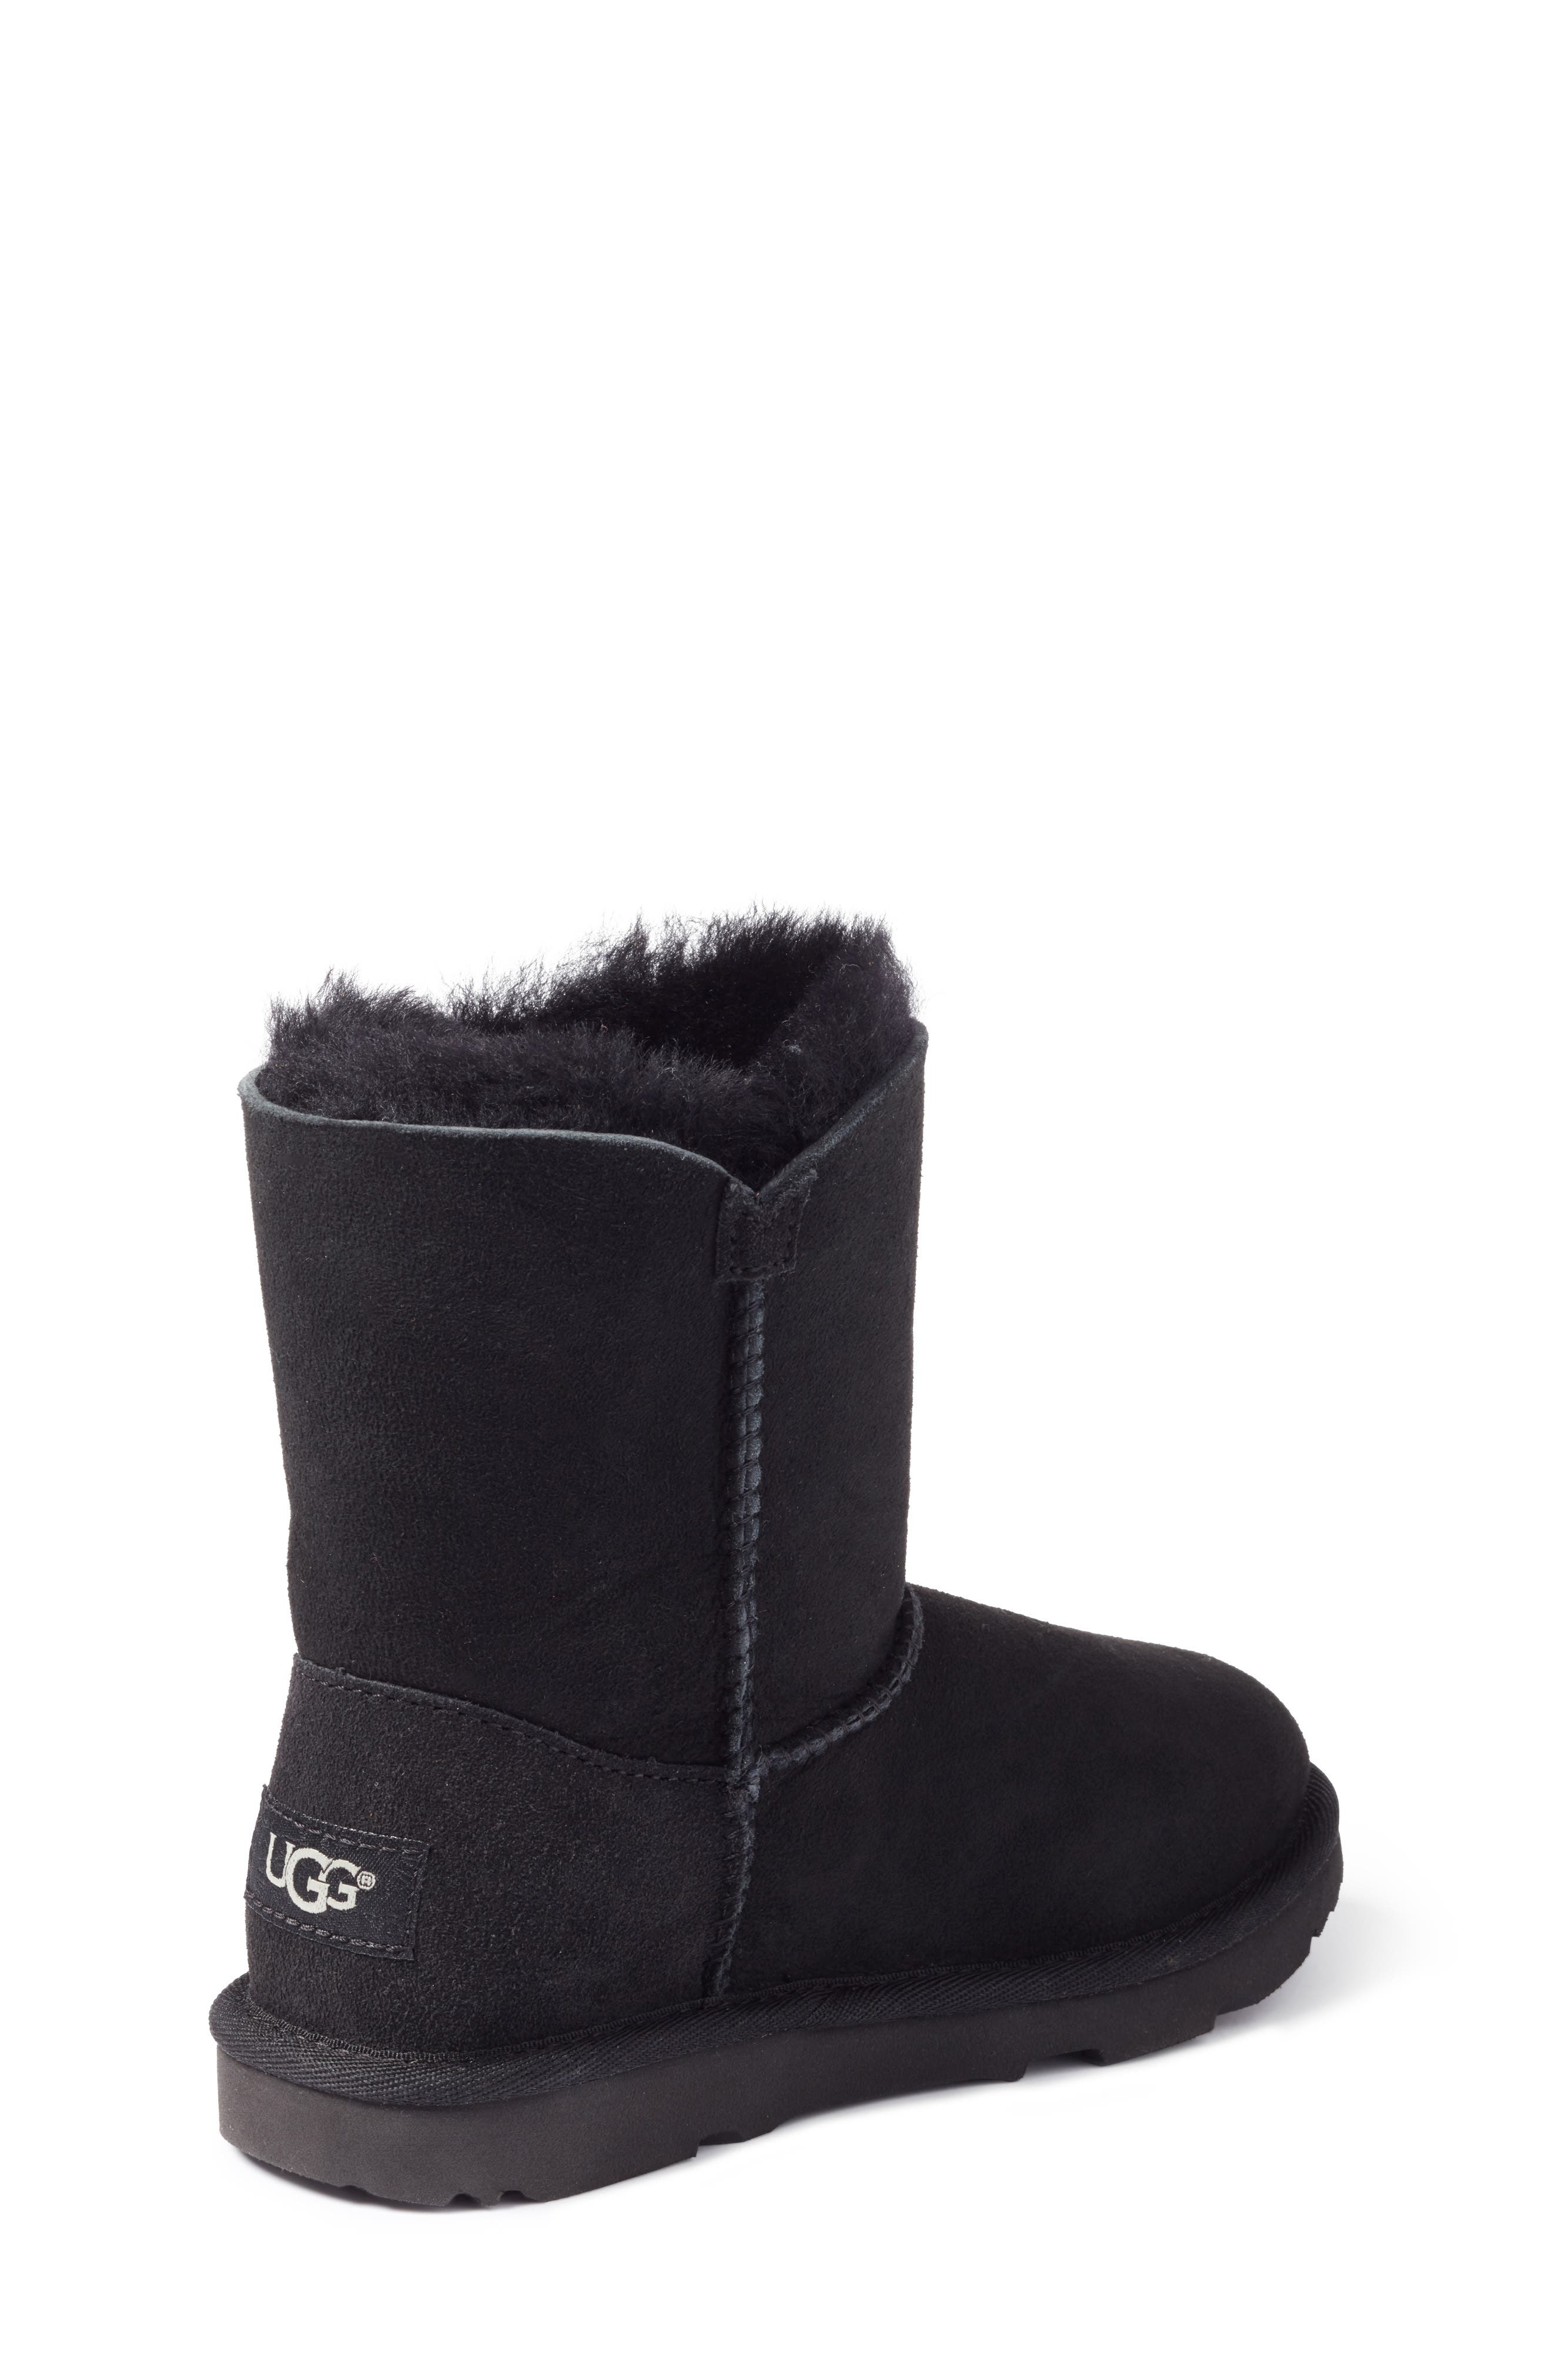 Bailey Button II Water Resistant Genuine Shearling Boot,                             Alternate thumbnail 2, color,                             BLACK SUEDE